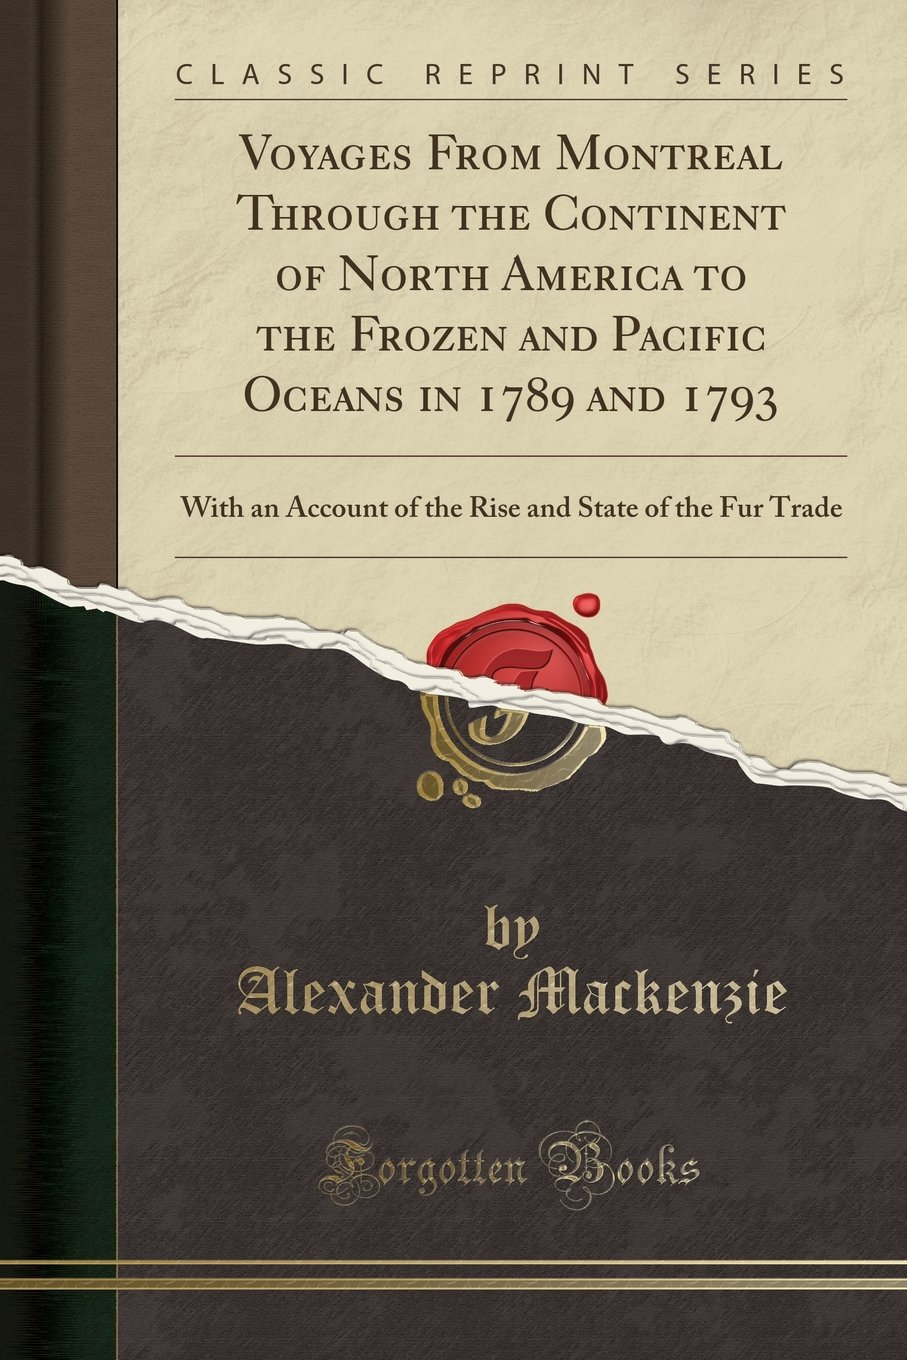 Voyages From Montreal Through the Continent of North America to the Frozen and Pacific Oceans in 1789 and 1793: With an Account of the Rise and State of the Fur Trade (Classic Reprint)